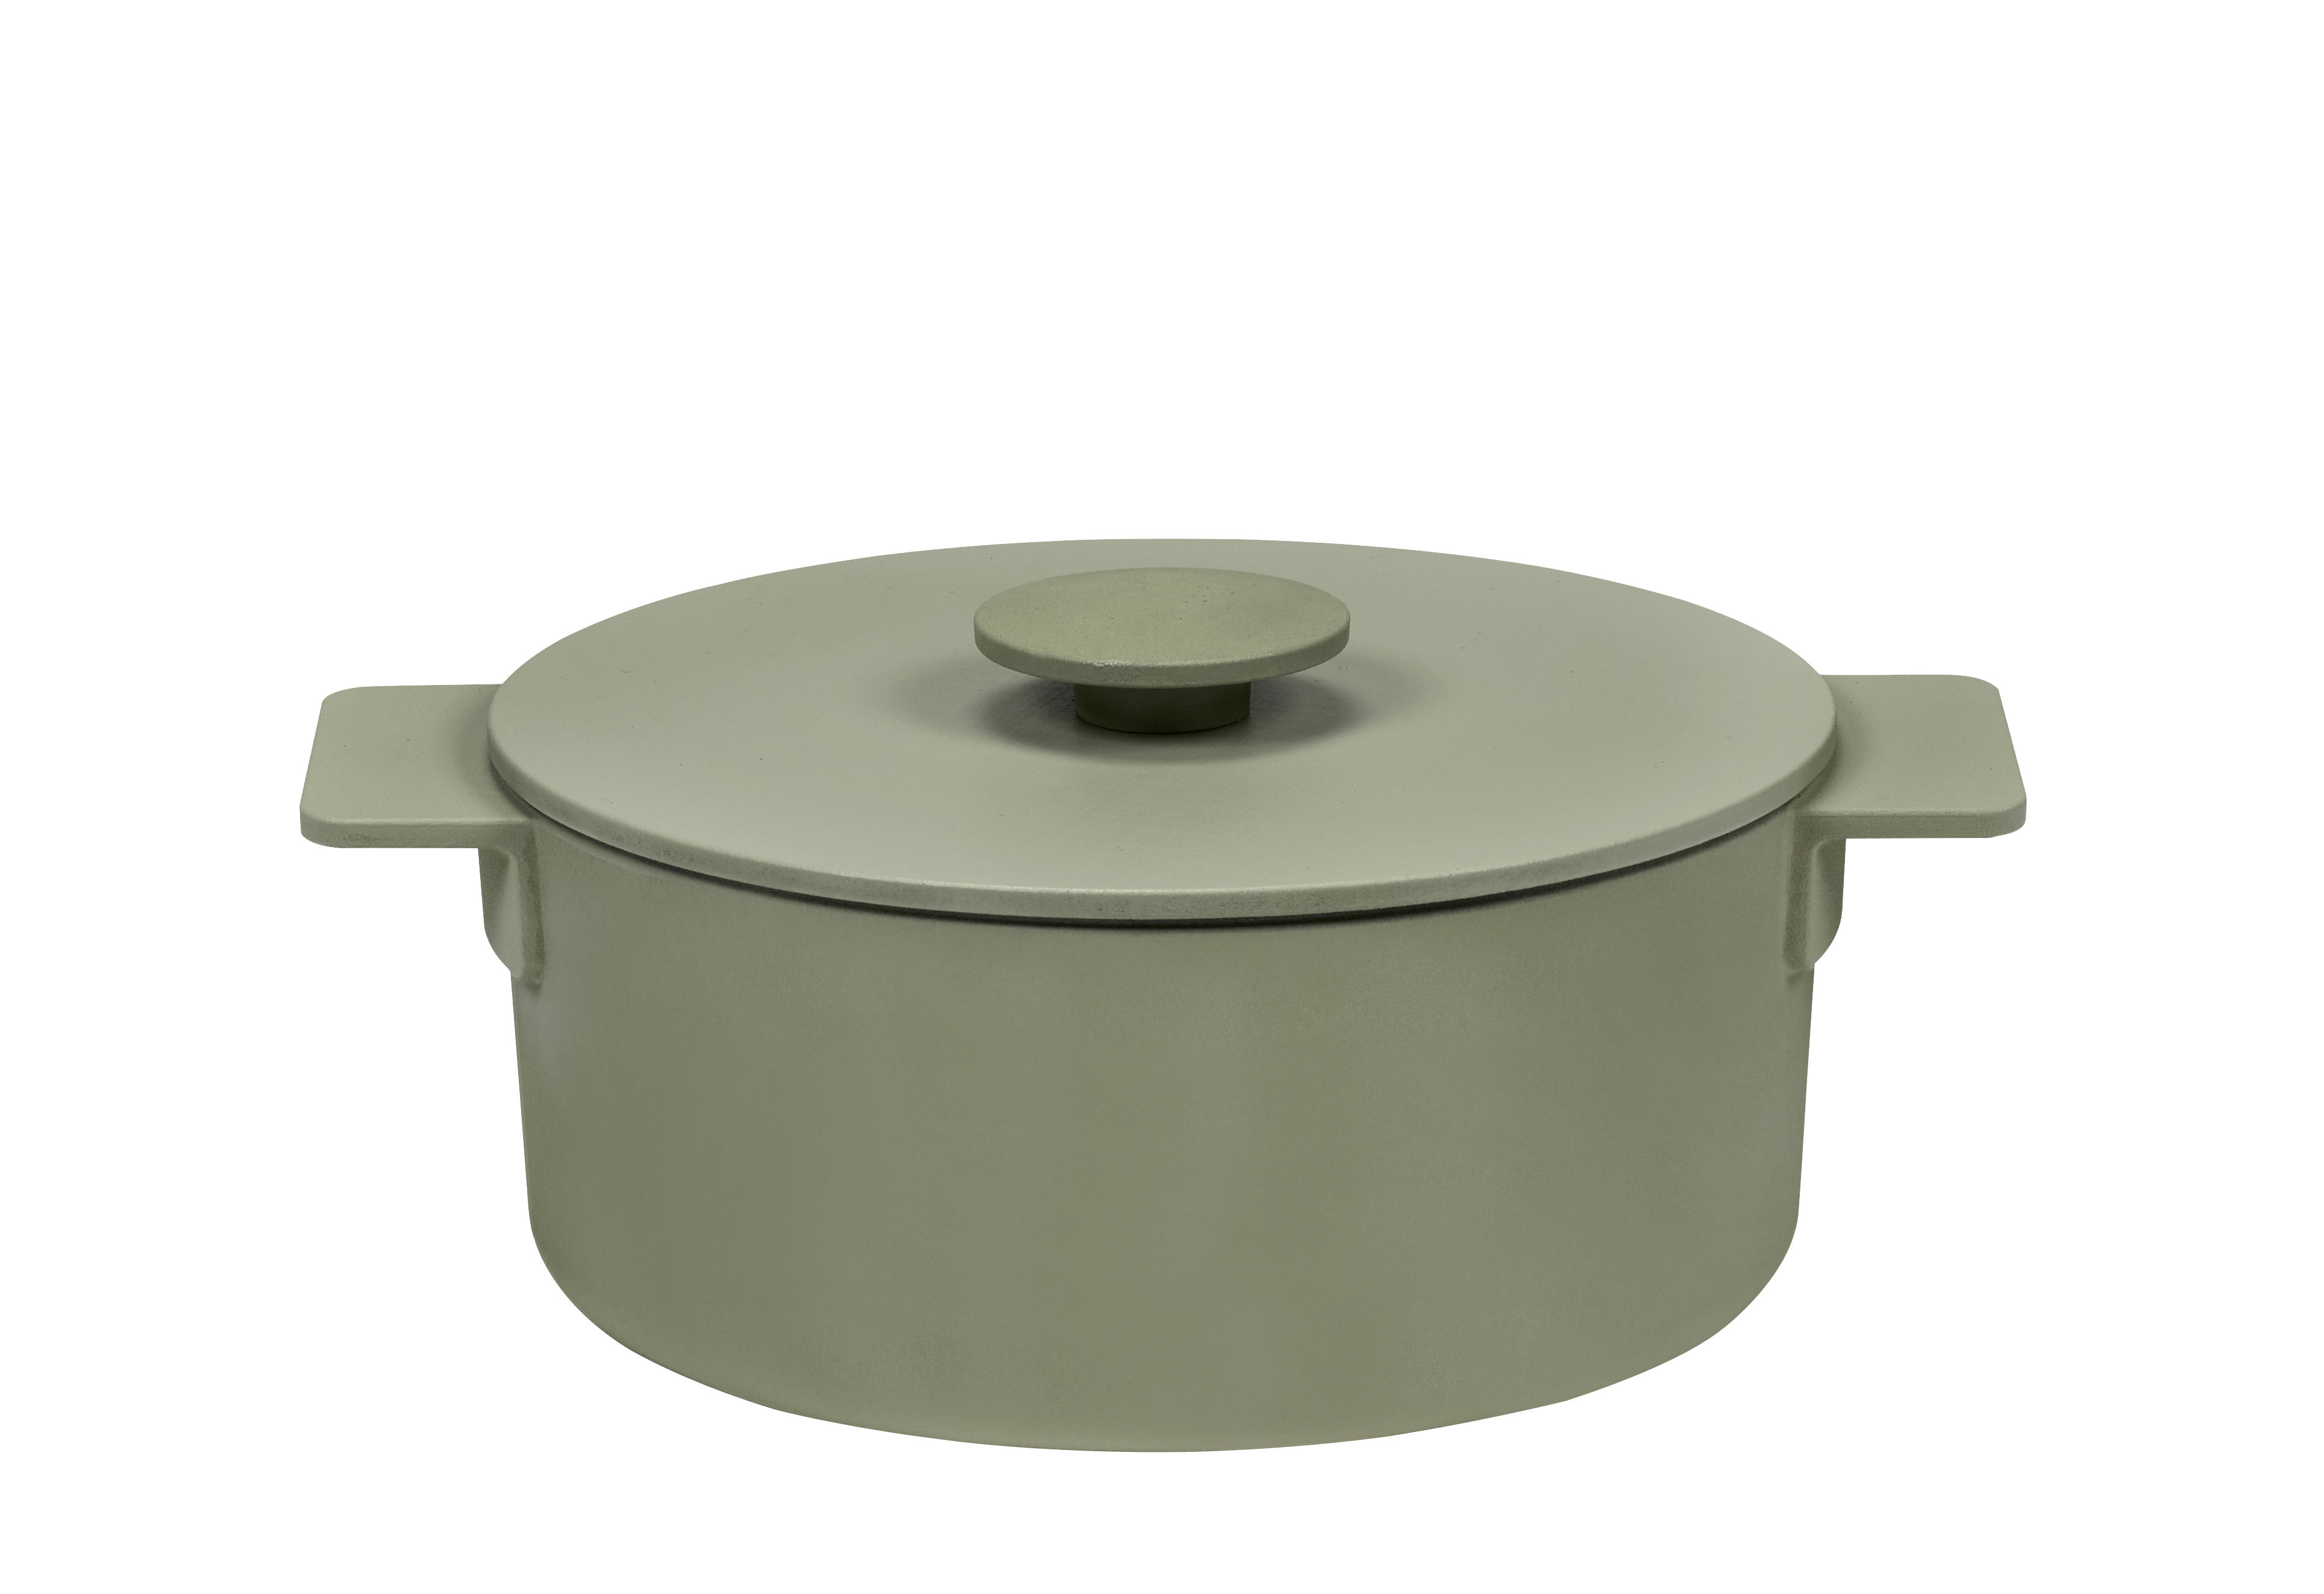 Kitchenware - Pots & Pans - Surface Casserole dish - / Ø 23 cm - All heat sources including induction by Serax - Camogreen - Cast iron